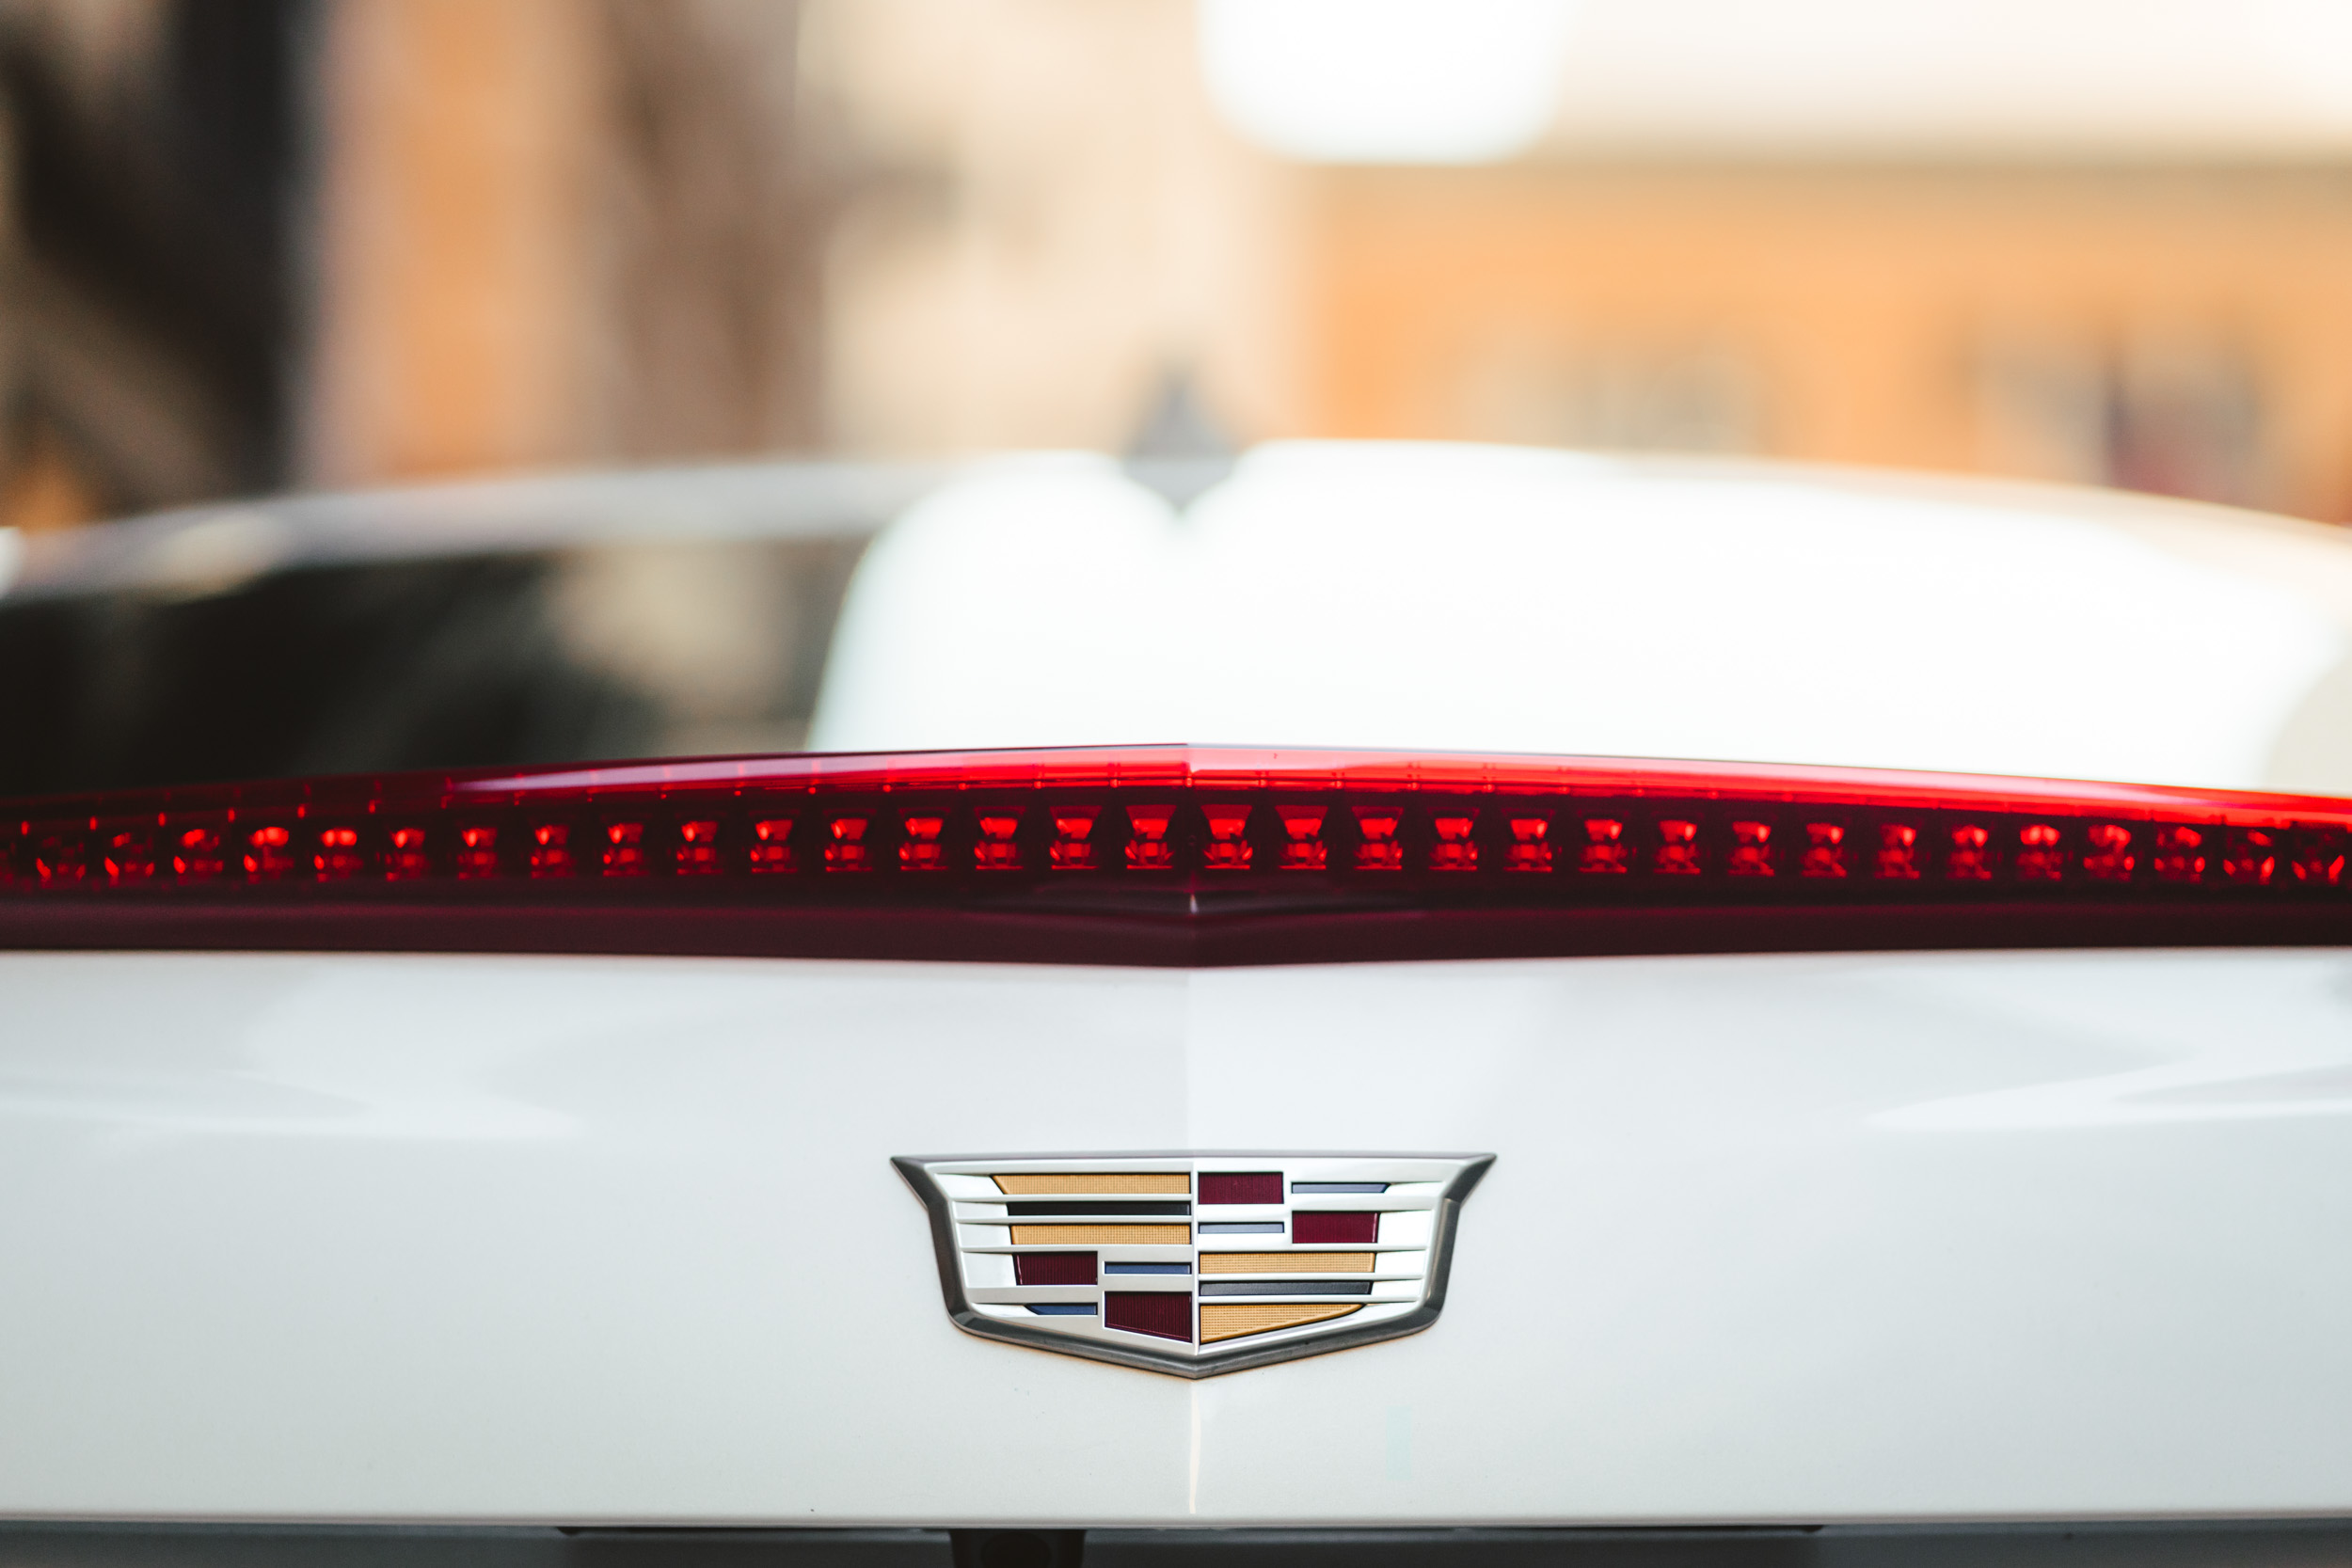 A detail shot of the back end logo of a white Cadillac ATS